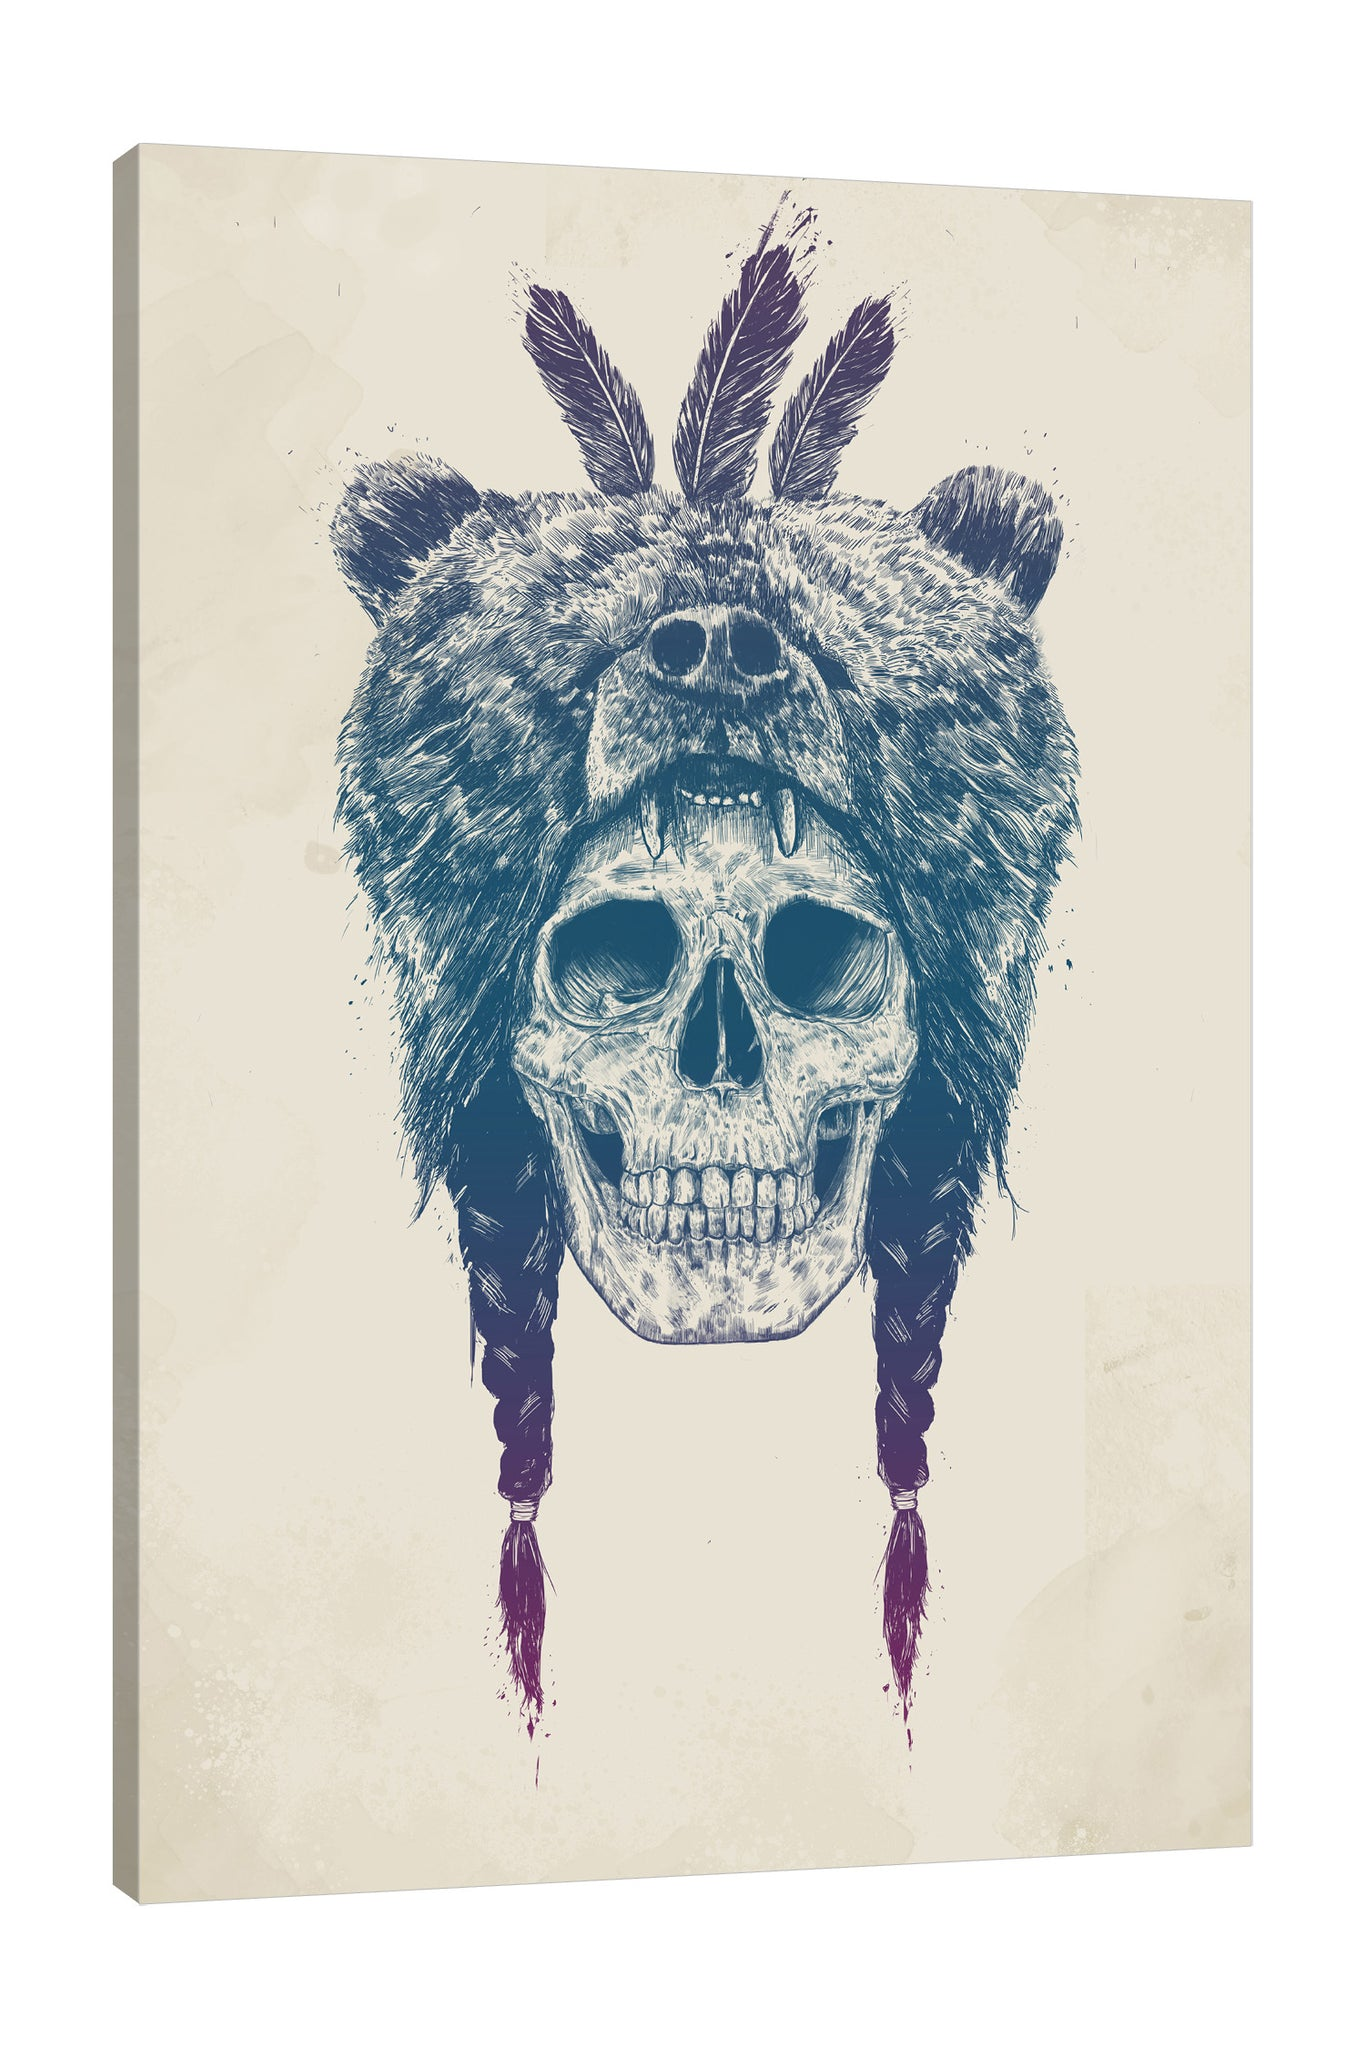 Balazs-Solti,Modern & Contemporary,Animals,Fashion,animals,animal,bear,bears,skulls,skull,feathers,feather,braids,braid,bones,bone,shaman,Mist Gray,White,Lime Green,Charcoal Gray,Sea Green,Gray,Purple